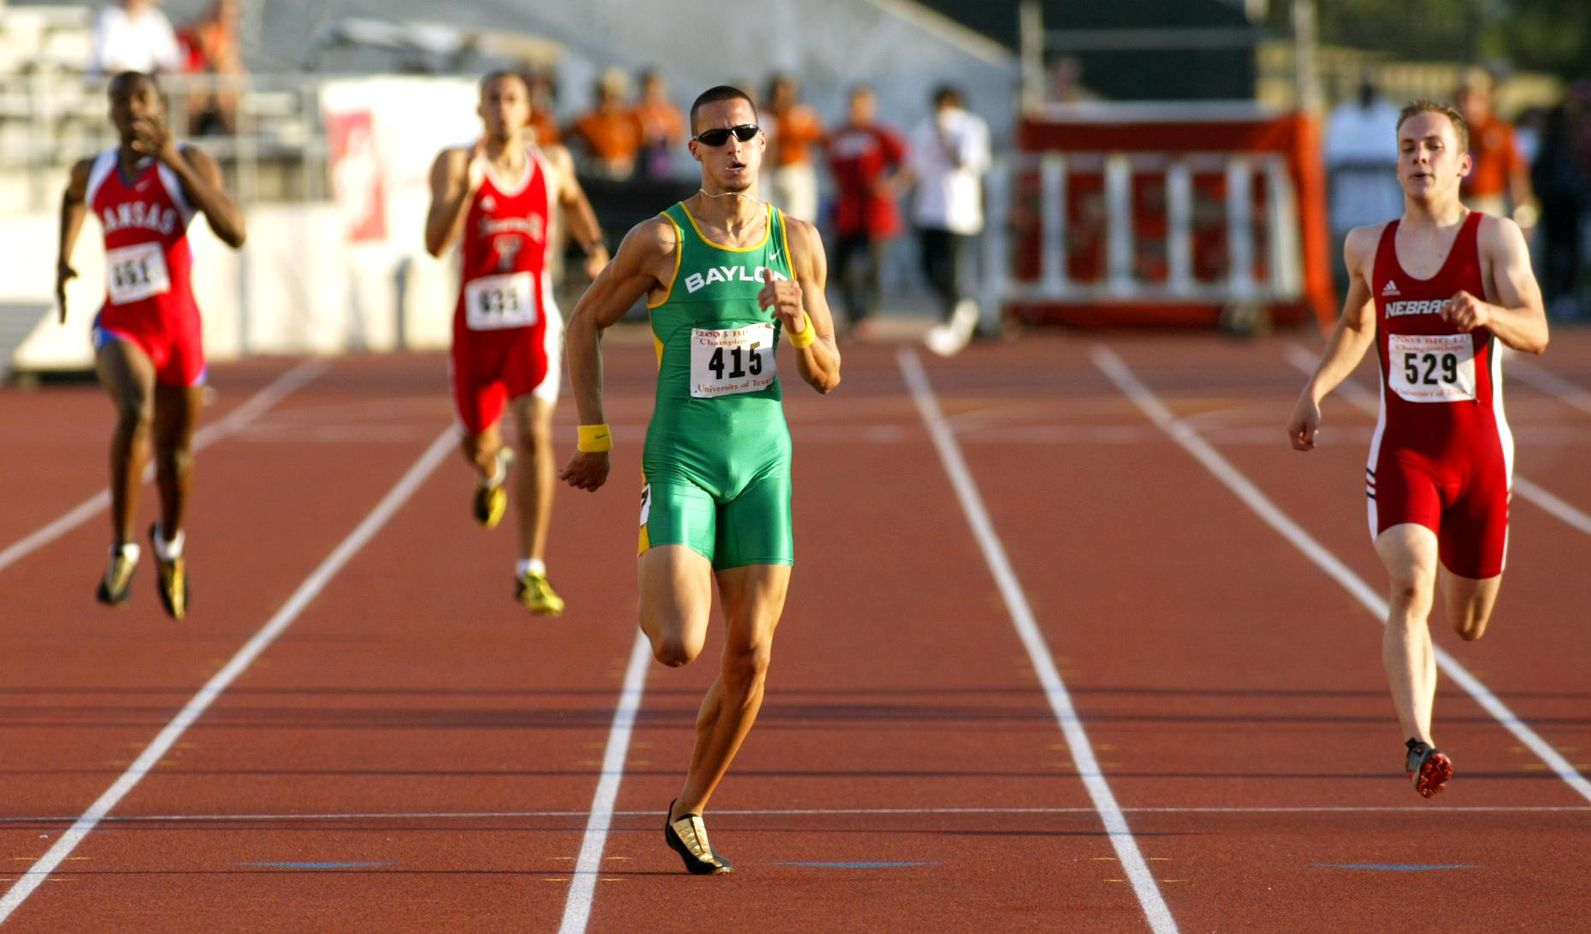 From 2003: Jeremy Wariner of Baylor (lane 7) wins his preliminary heat in the men's 400-meters at the Big IX Outdoor Track & Field Championships at Mike A. Myers Stadium in Austin Sunday.